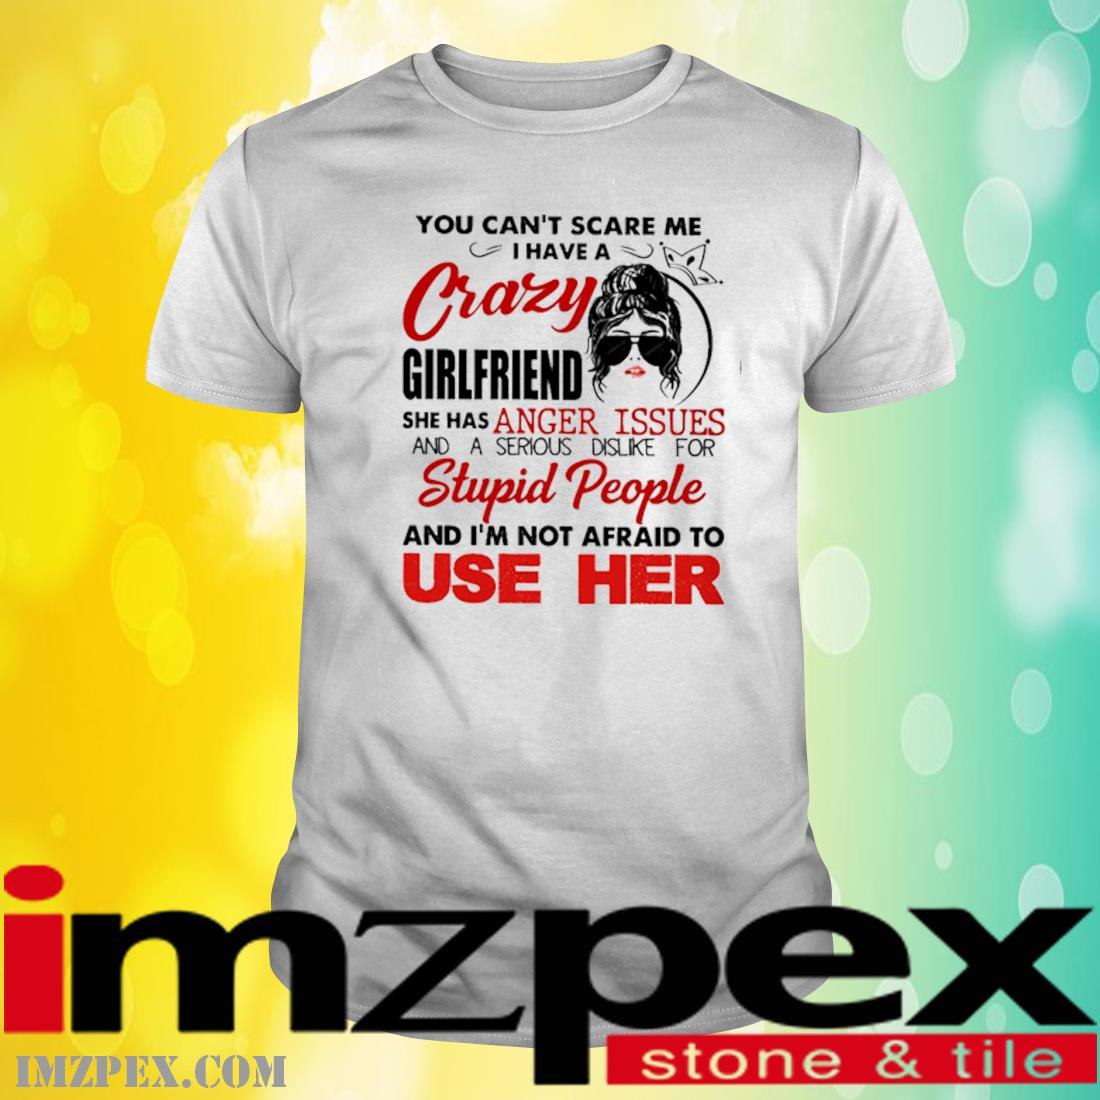 You Can't Scare Me I Have A Crazy Girlfriend She Has Anger Issues And A Serious Dislike For Stupid People Shirt